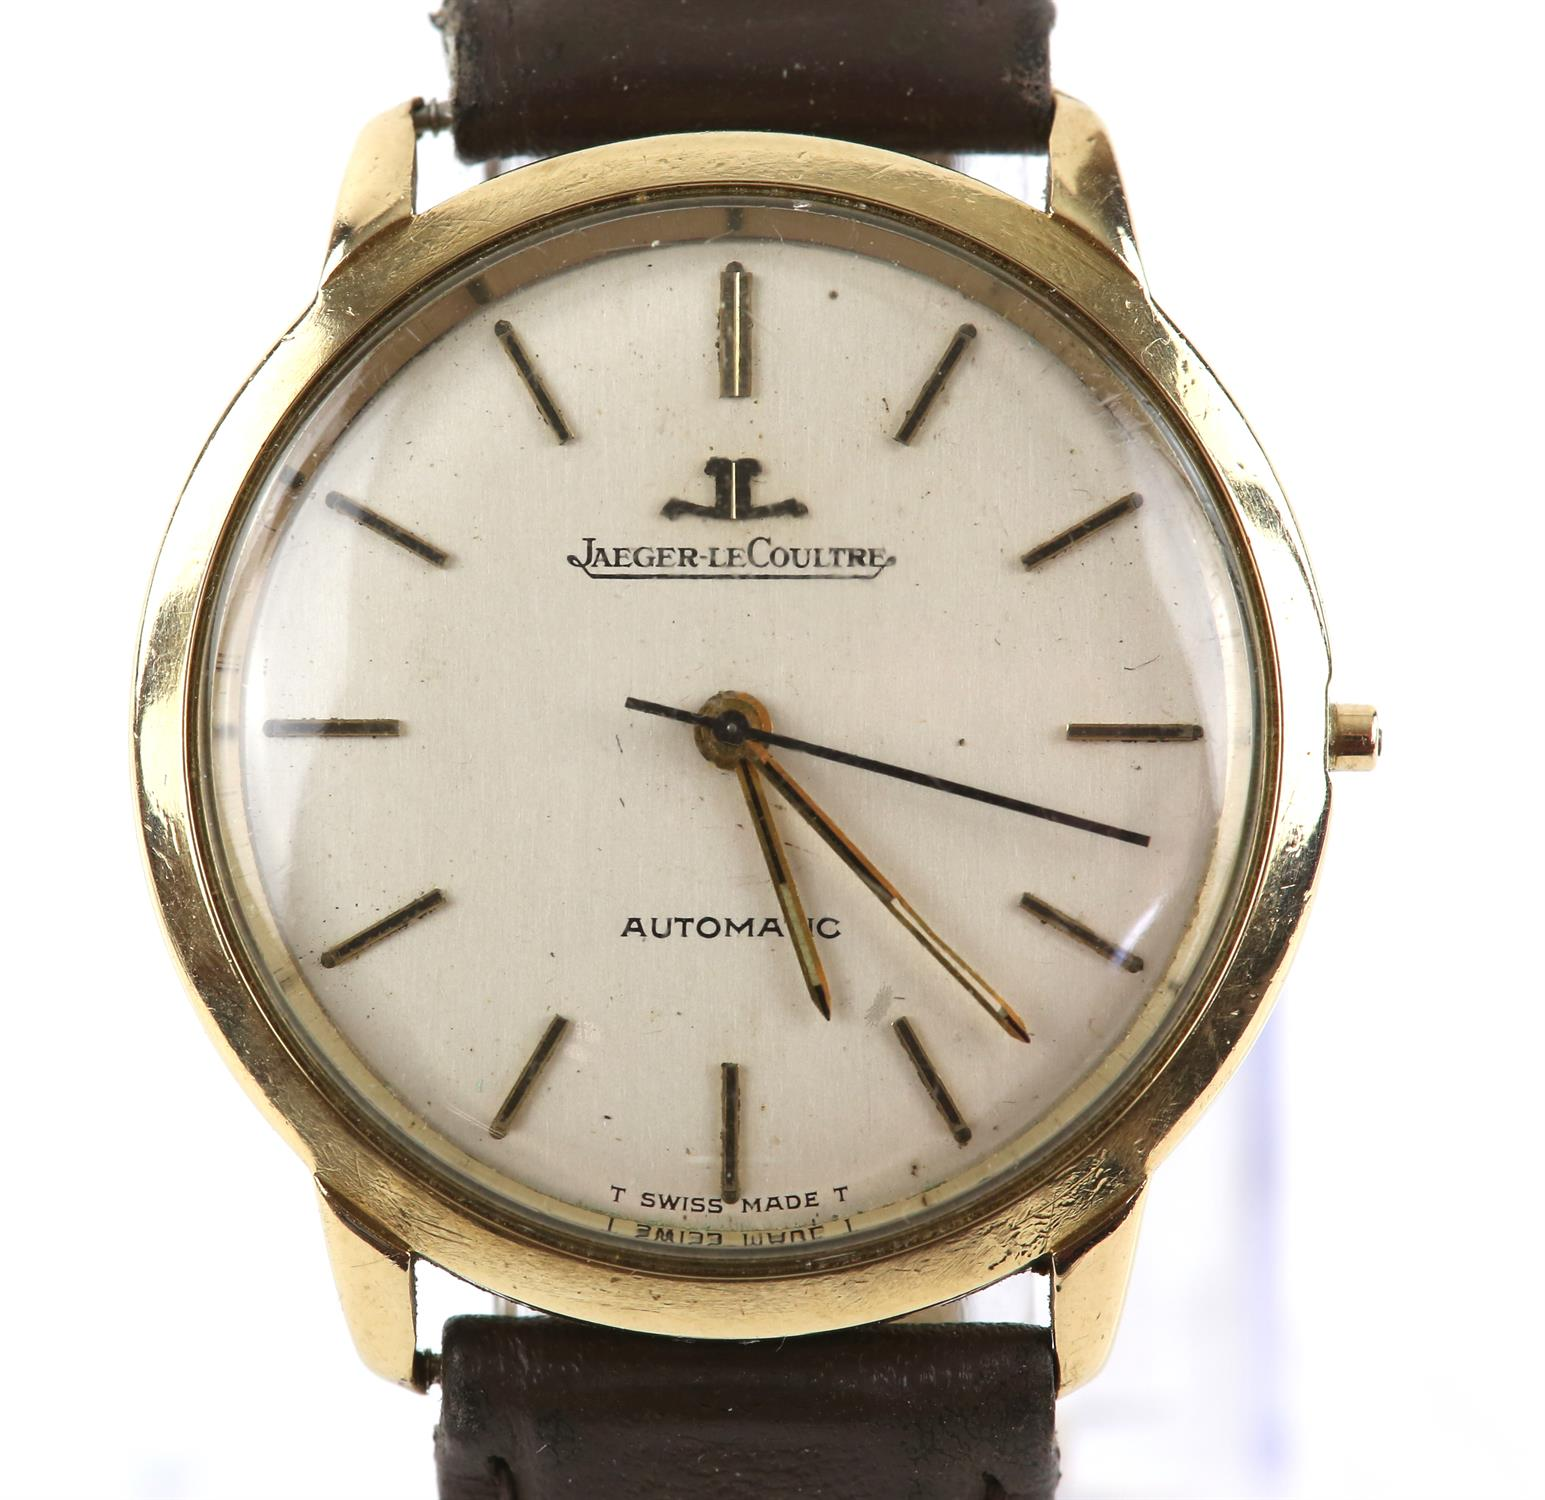 Jaeger Le Coultre, Reference 386 91 A Gentleman's gold cased wristwatch, signed silvered dial with